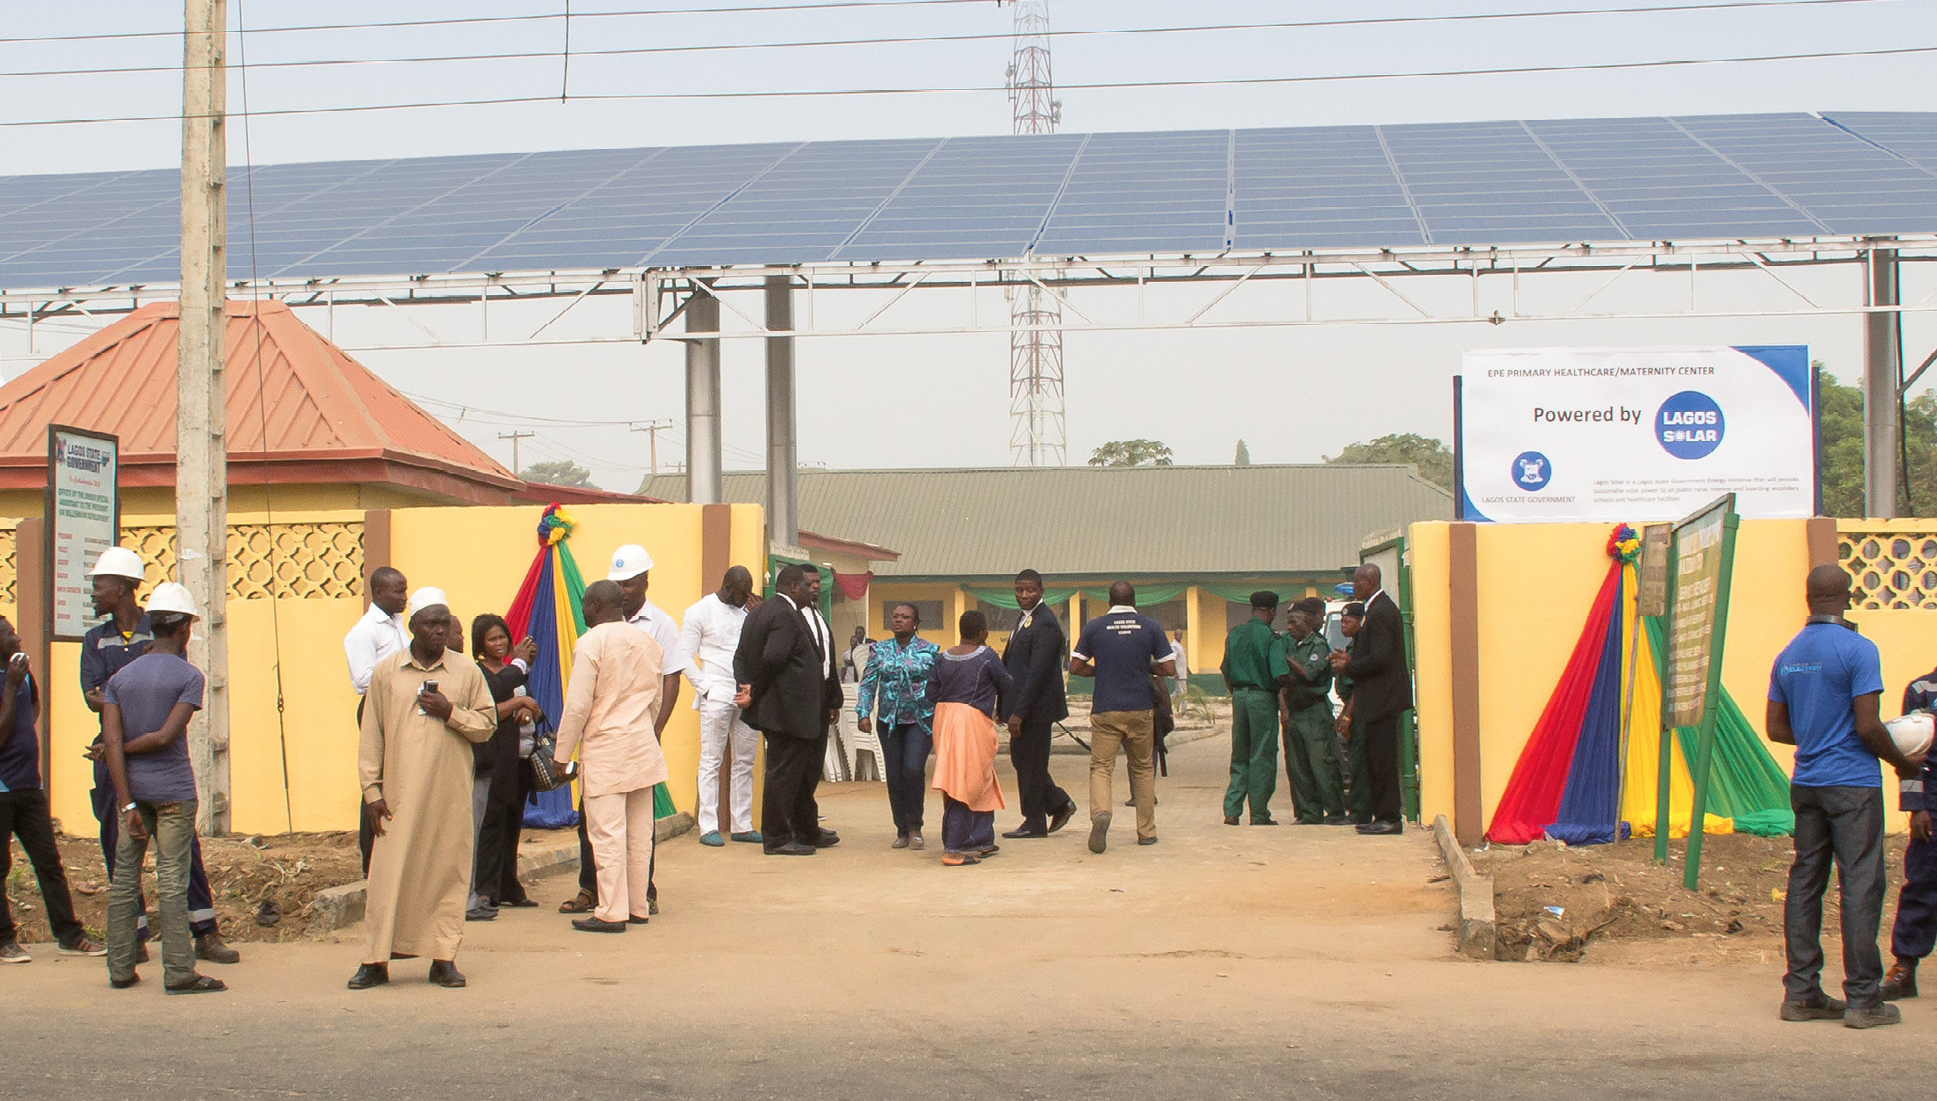 Solar panels at Epe Healthcare and Maternity Centre, Epe, Lagos State, Nigeria